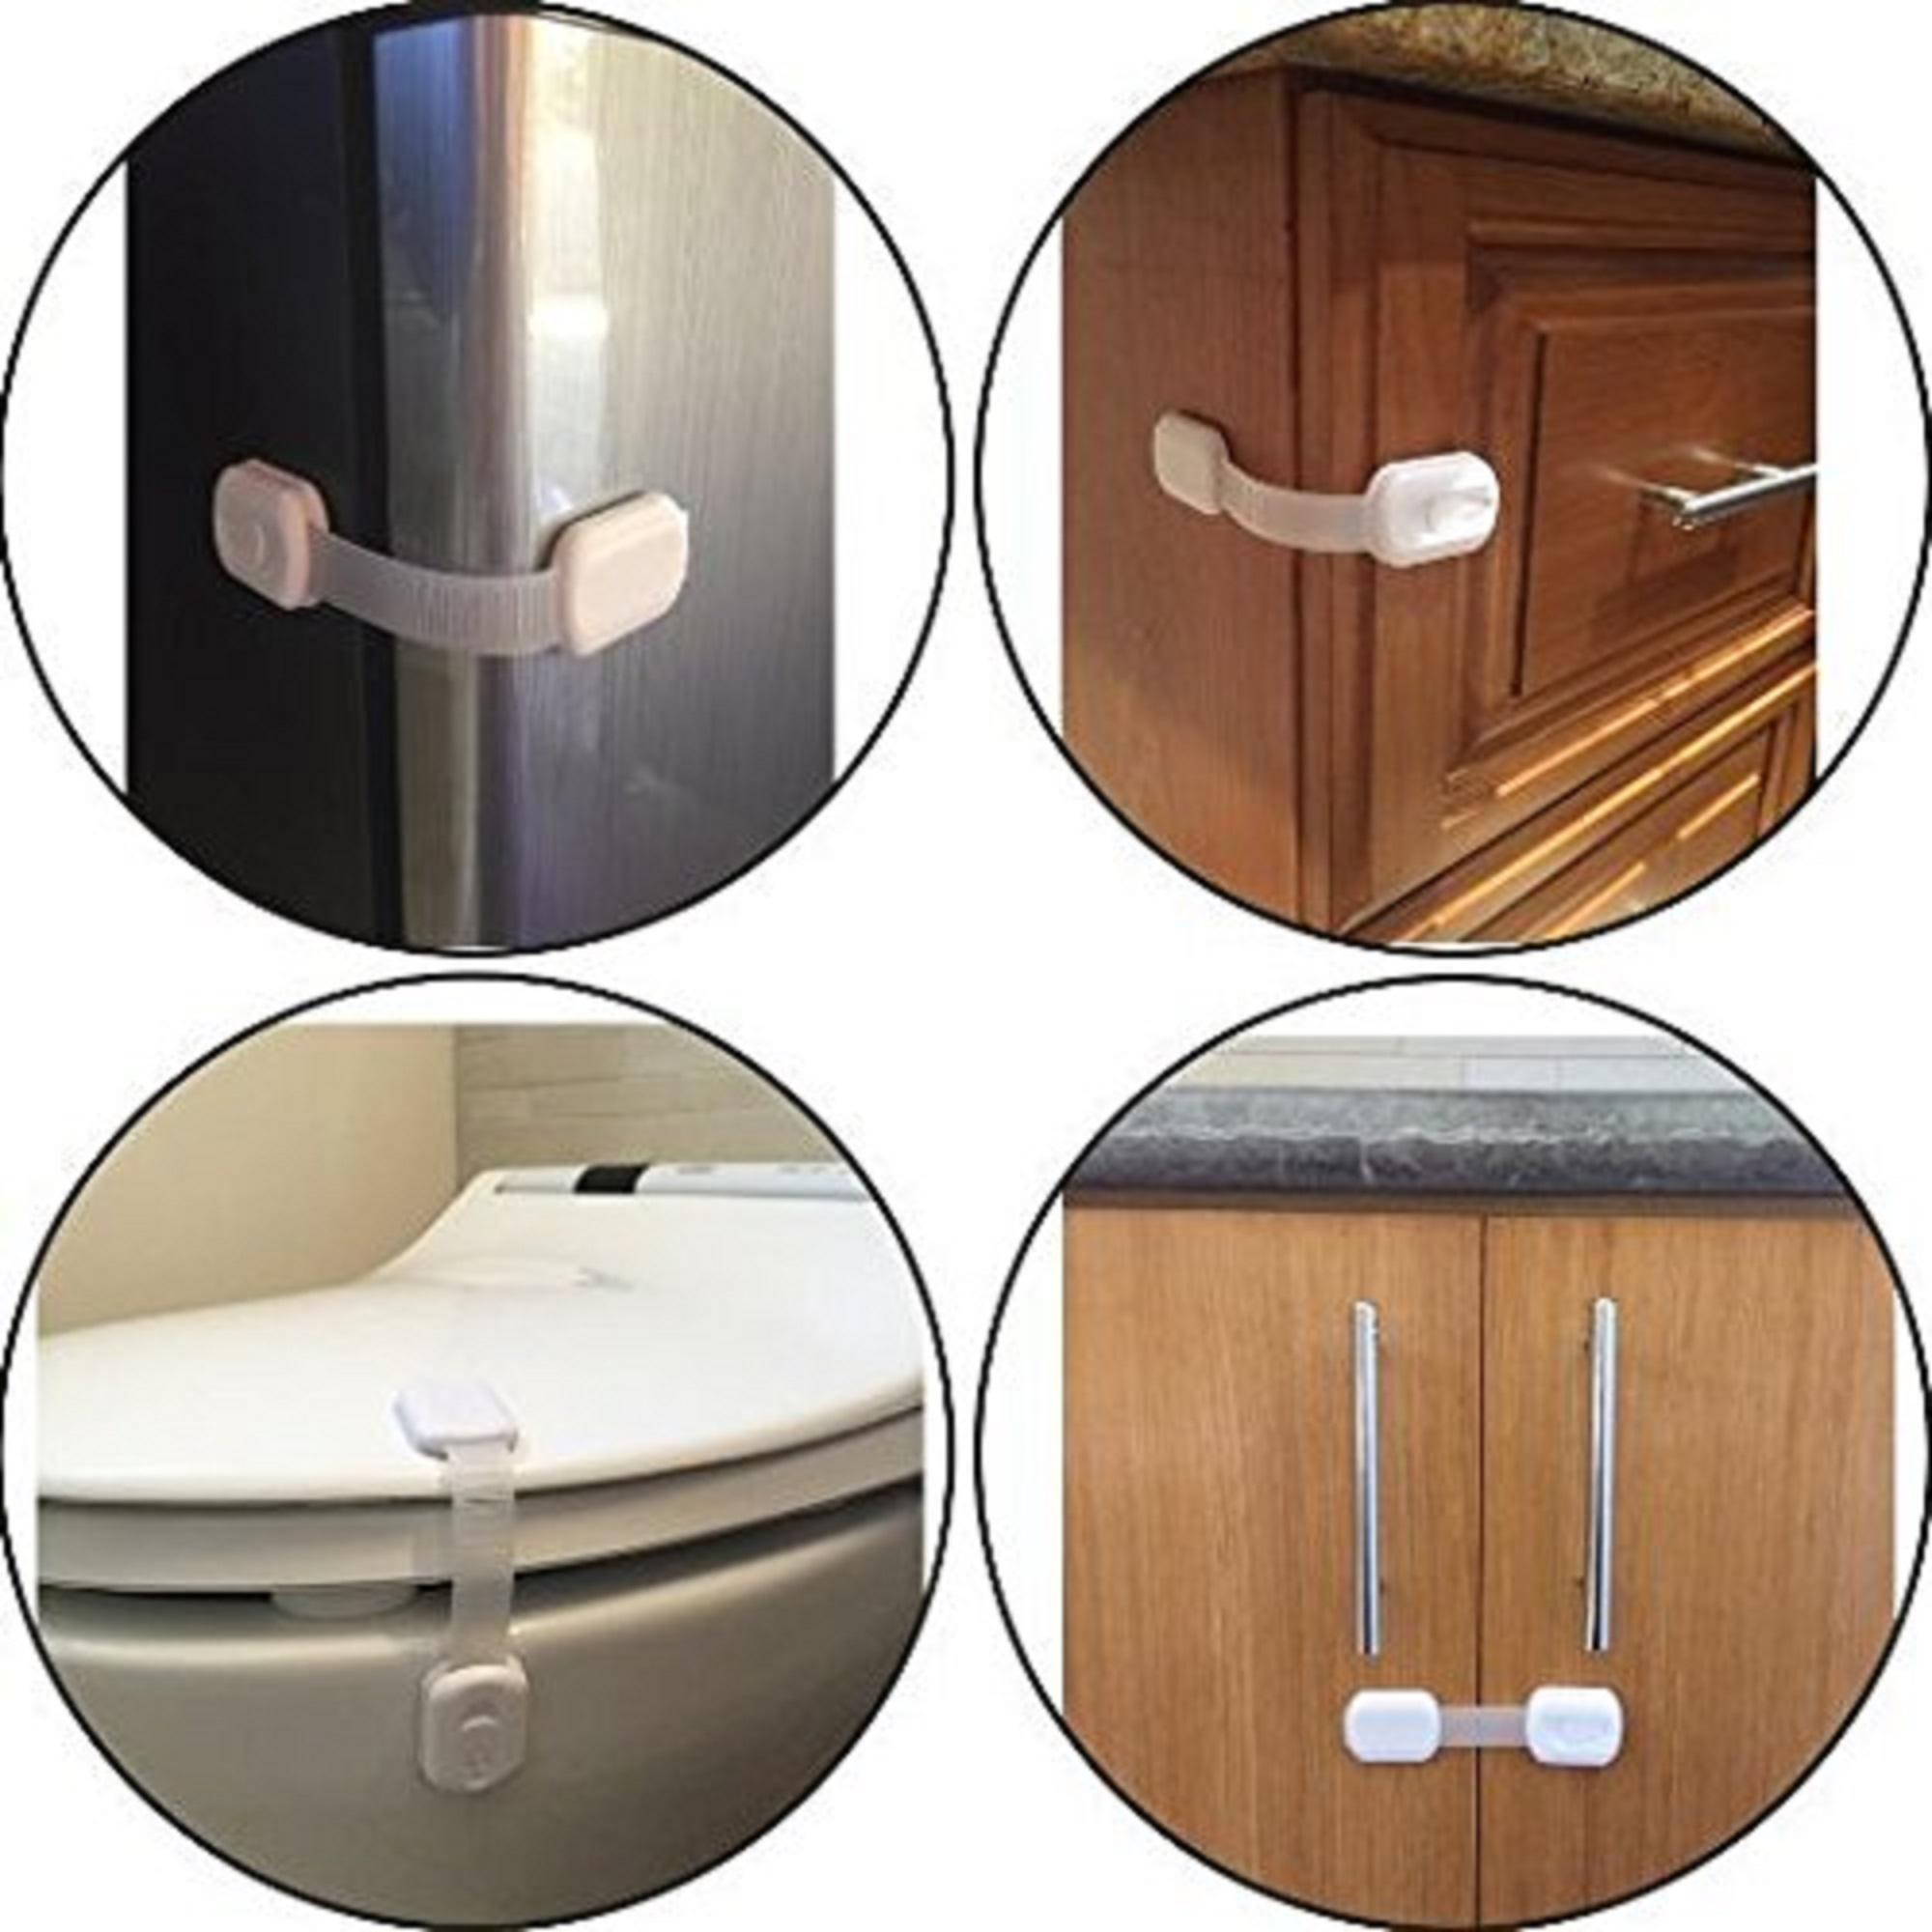 PREMIUM Adjustable Child Safety Locks - Latches to Baby Proof Cabinets, Drawers, Fridge, Oven, Dishwasher, Toilet Seat - with 3M Adhesive - No Tools or Drilling - 6x Pack white